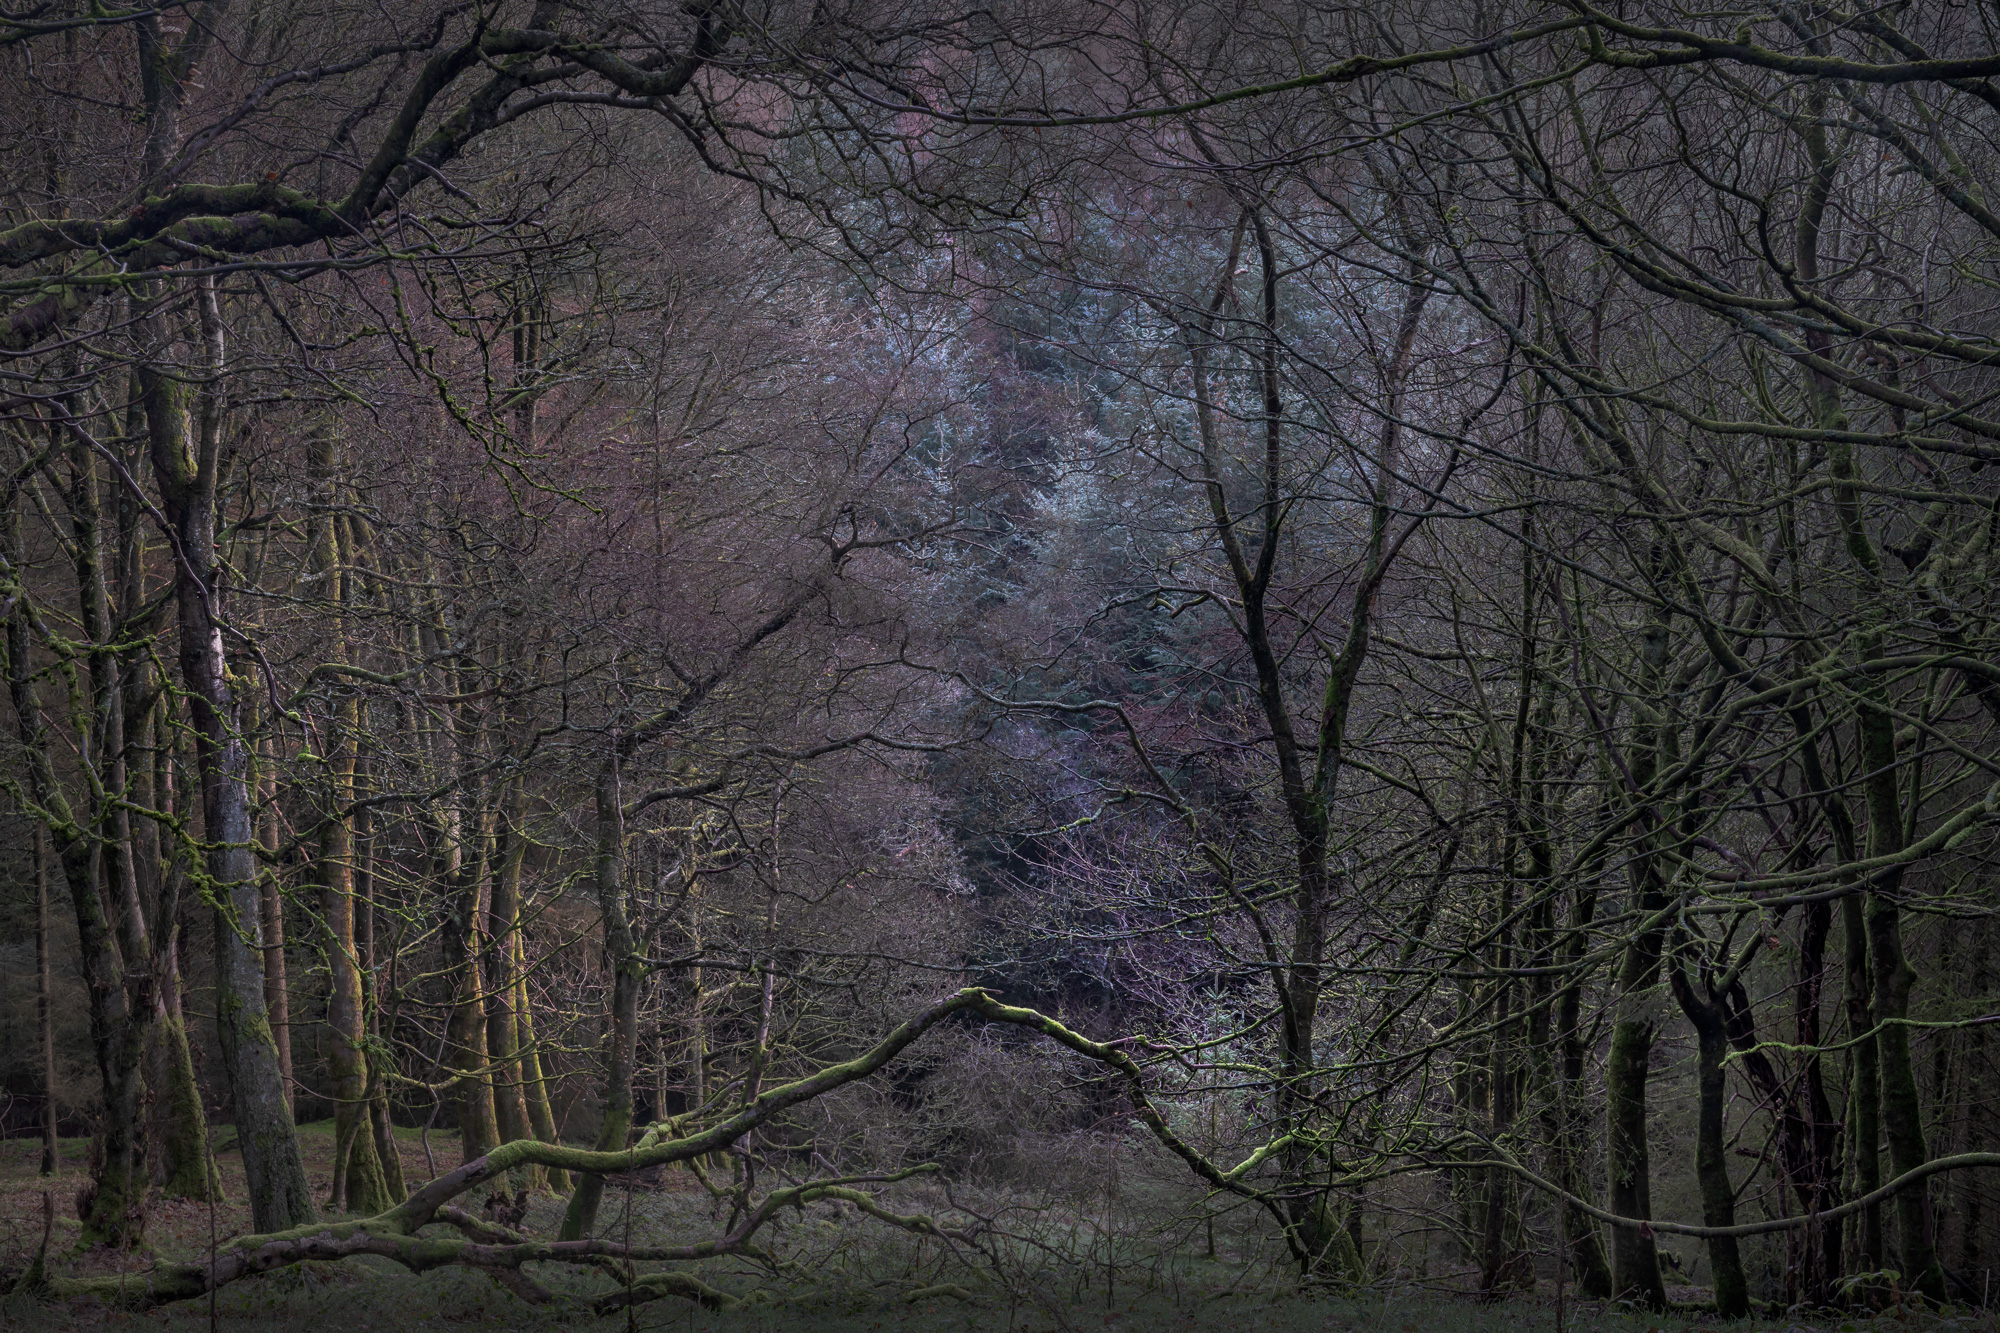 MACCLESFIELD FOREST